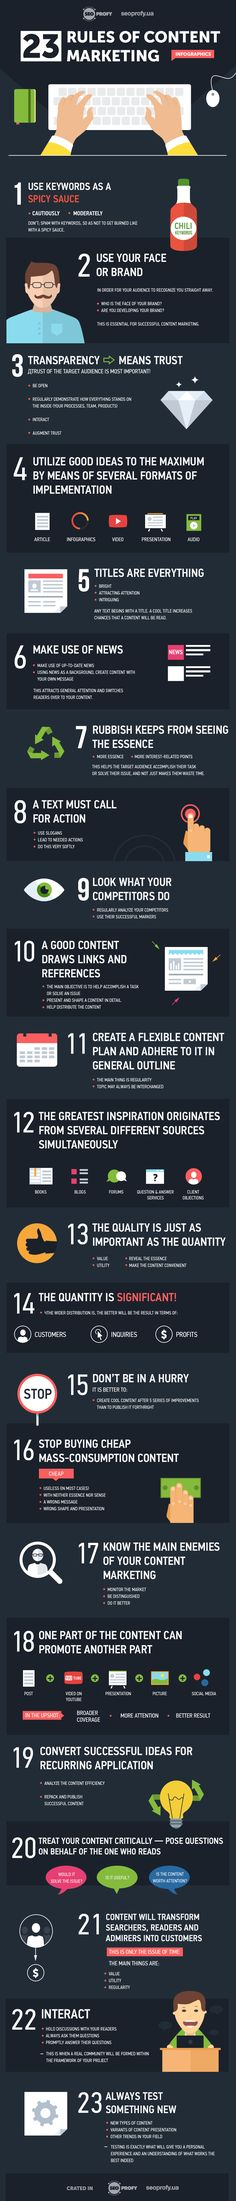 #Infographic about #ContentMarketing by HeadVision - http://head-vision.com/infographic.html